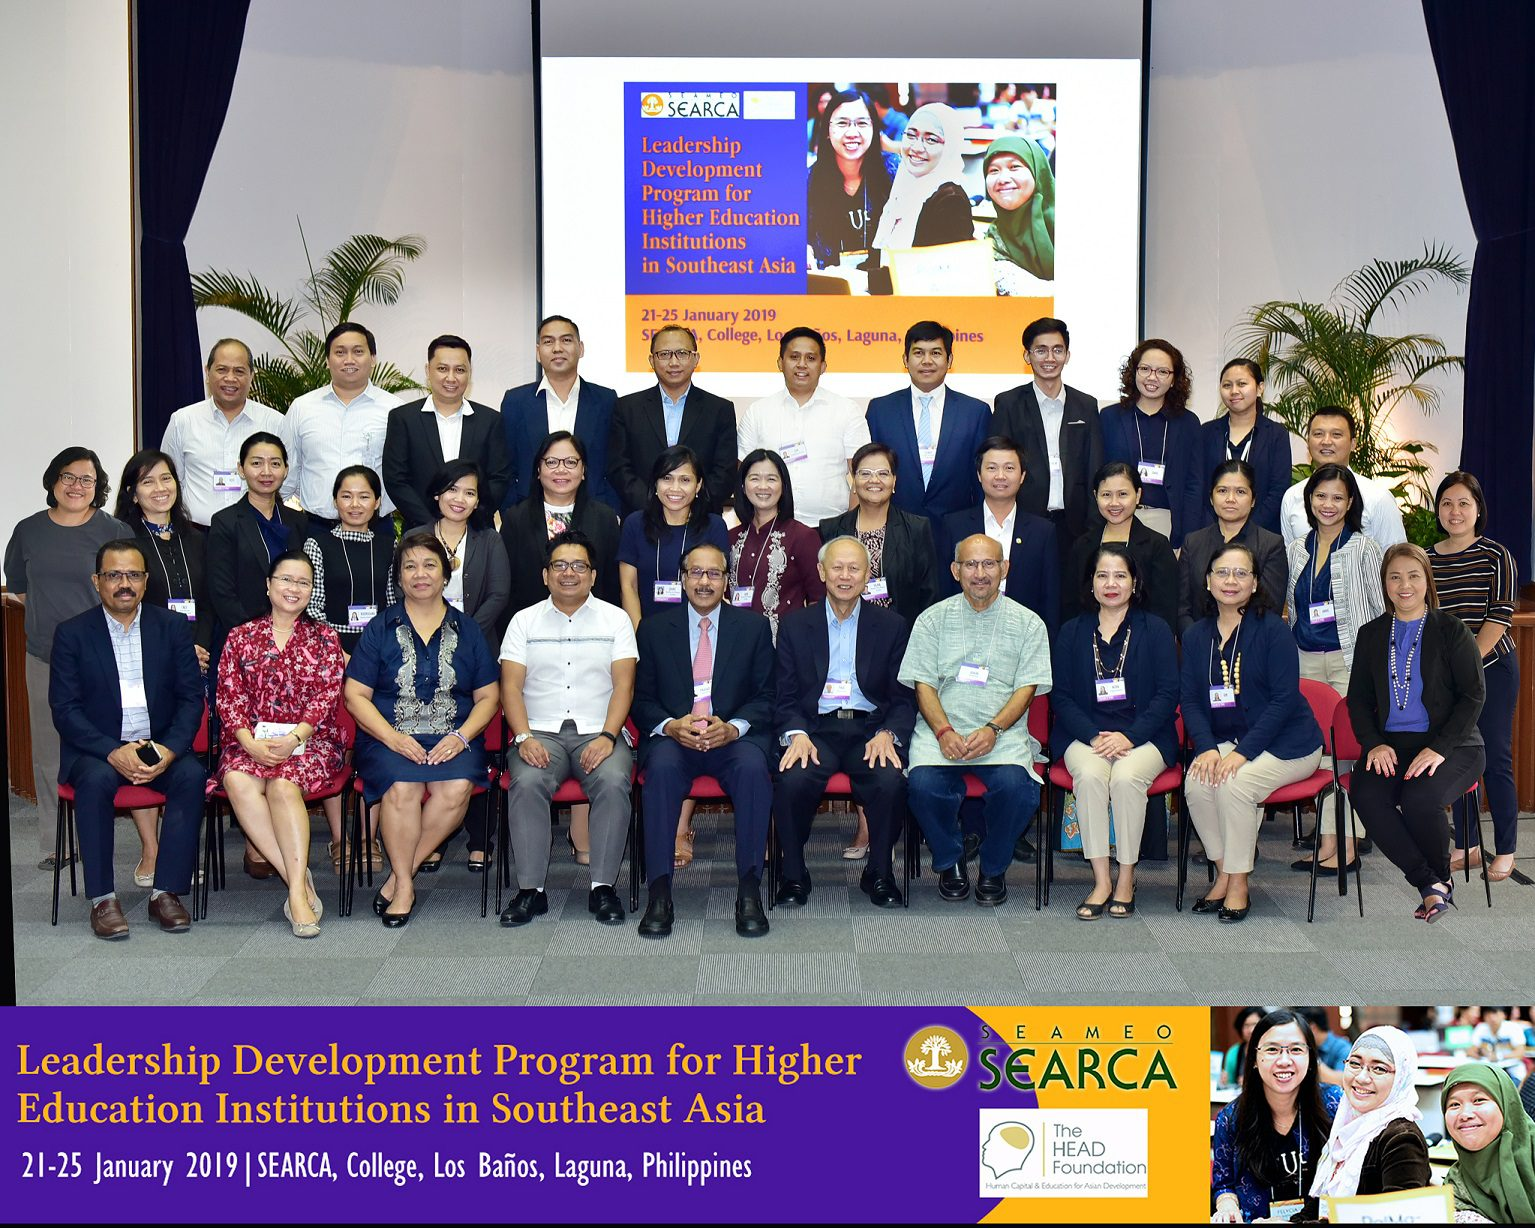 Leadership Development Program for Higher Education Institutions in Southeast Asia